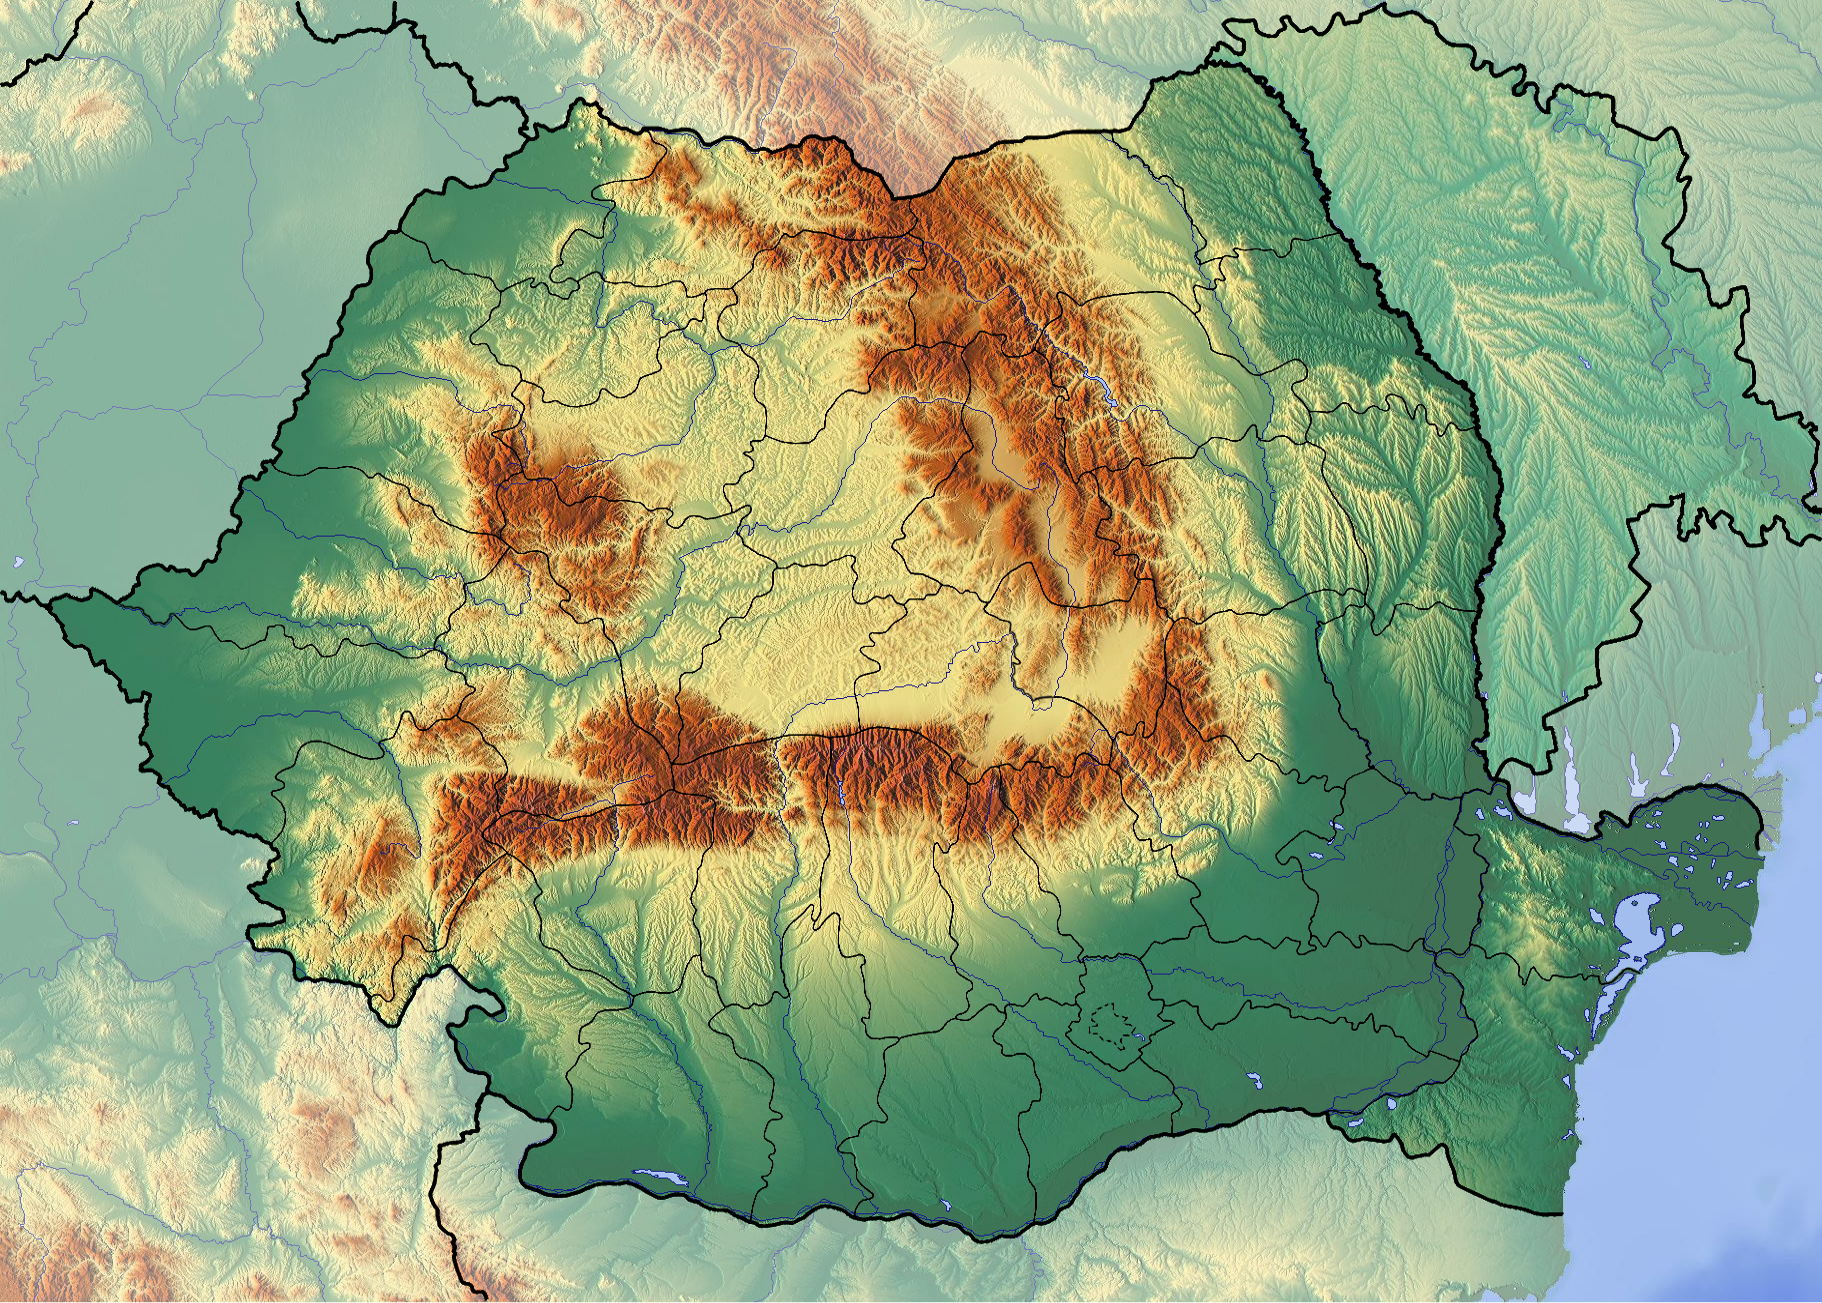 File:Romania location map Topographic.png - Wikimedia Commons